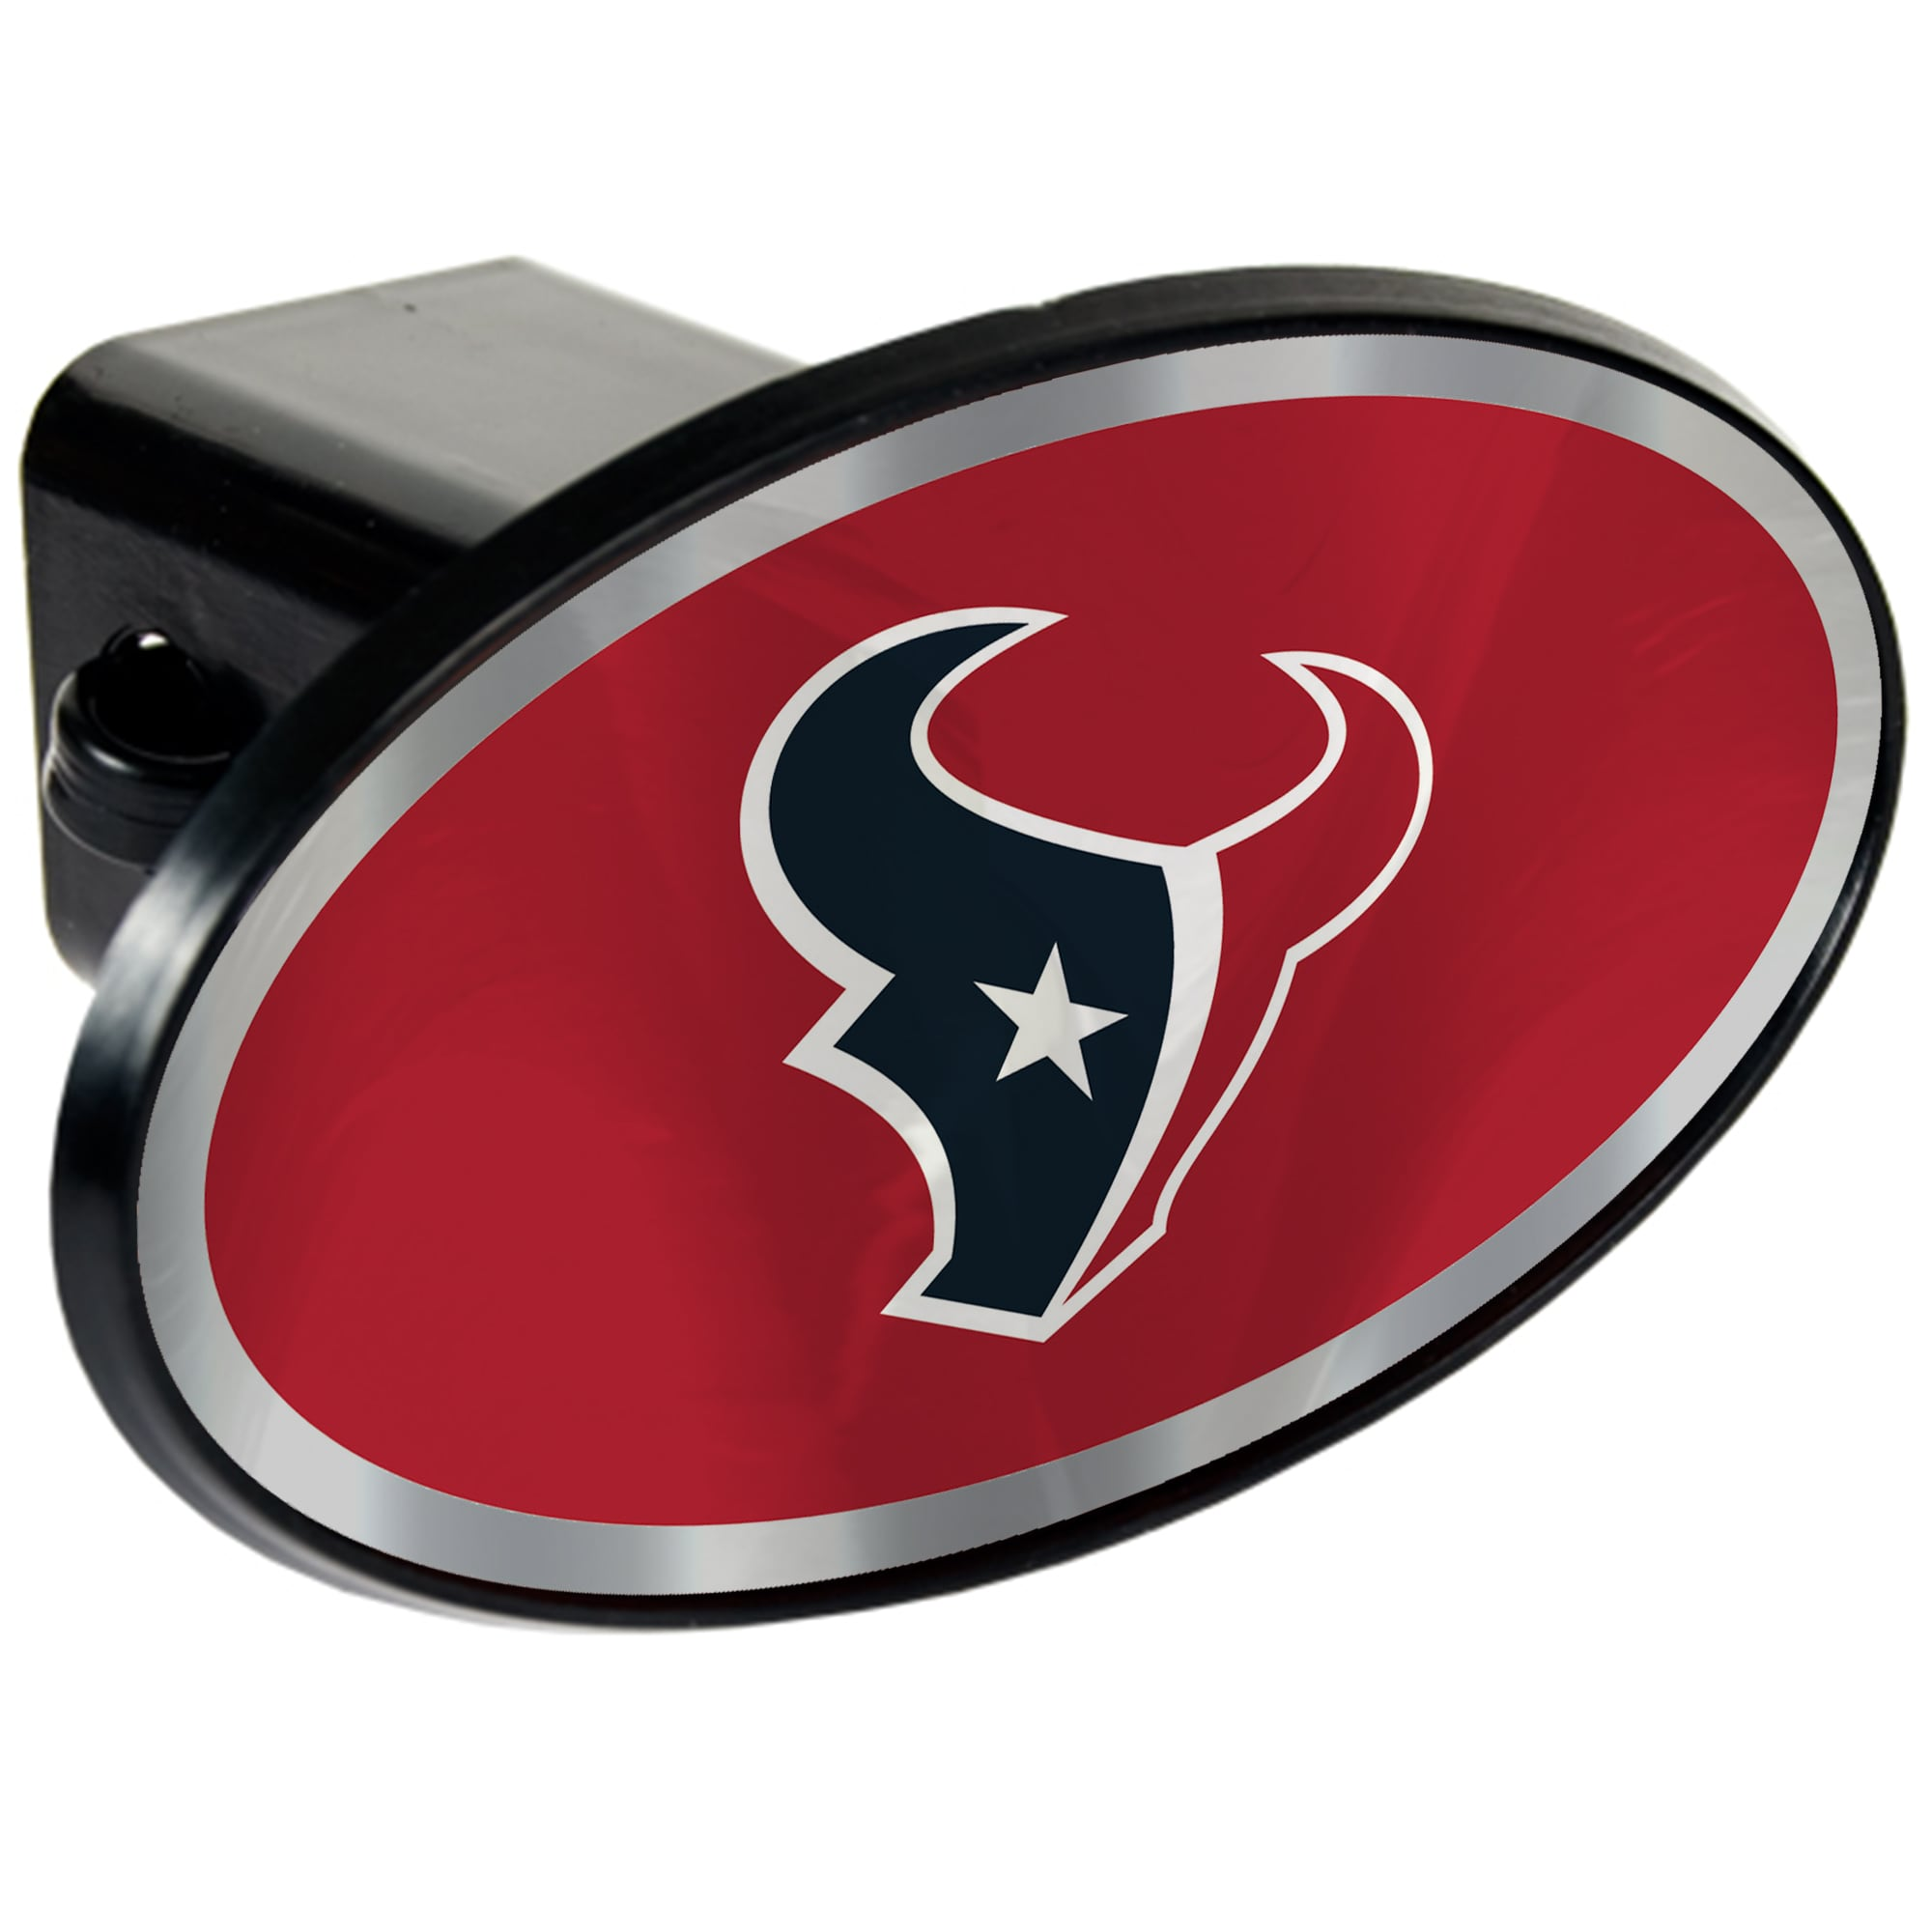 Houston Texans Oval Car Hitch Cover